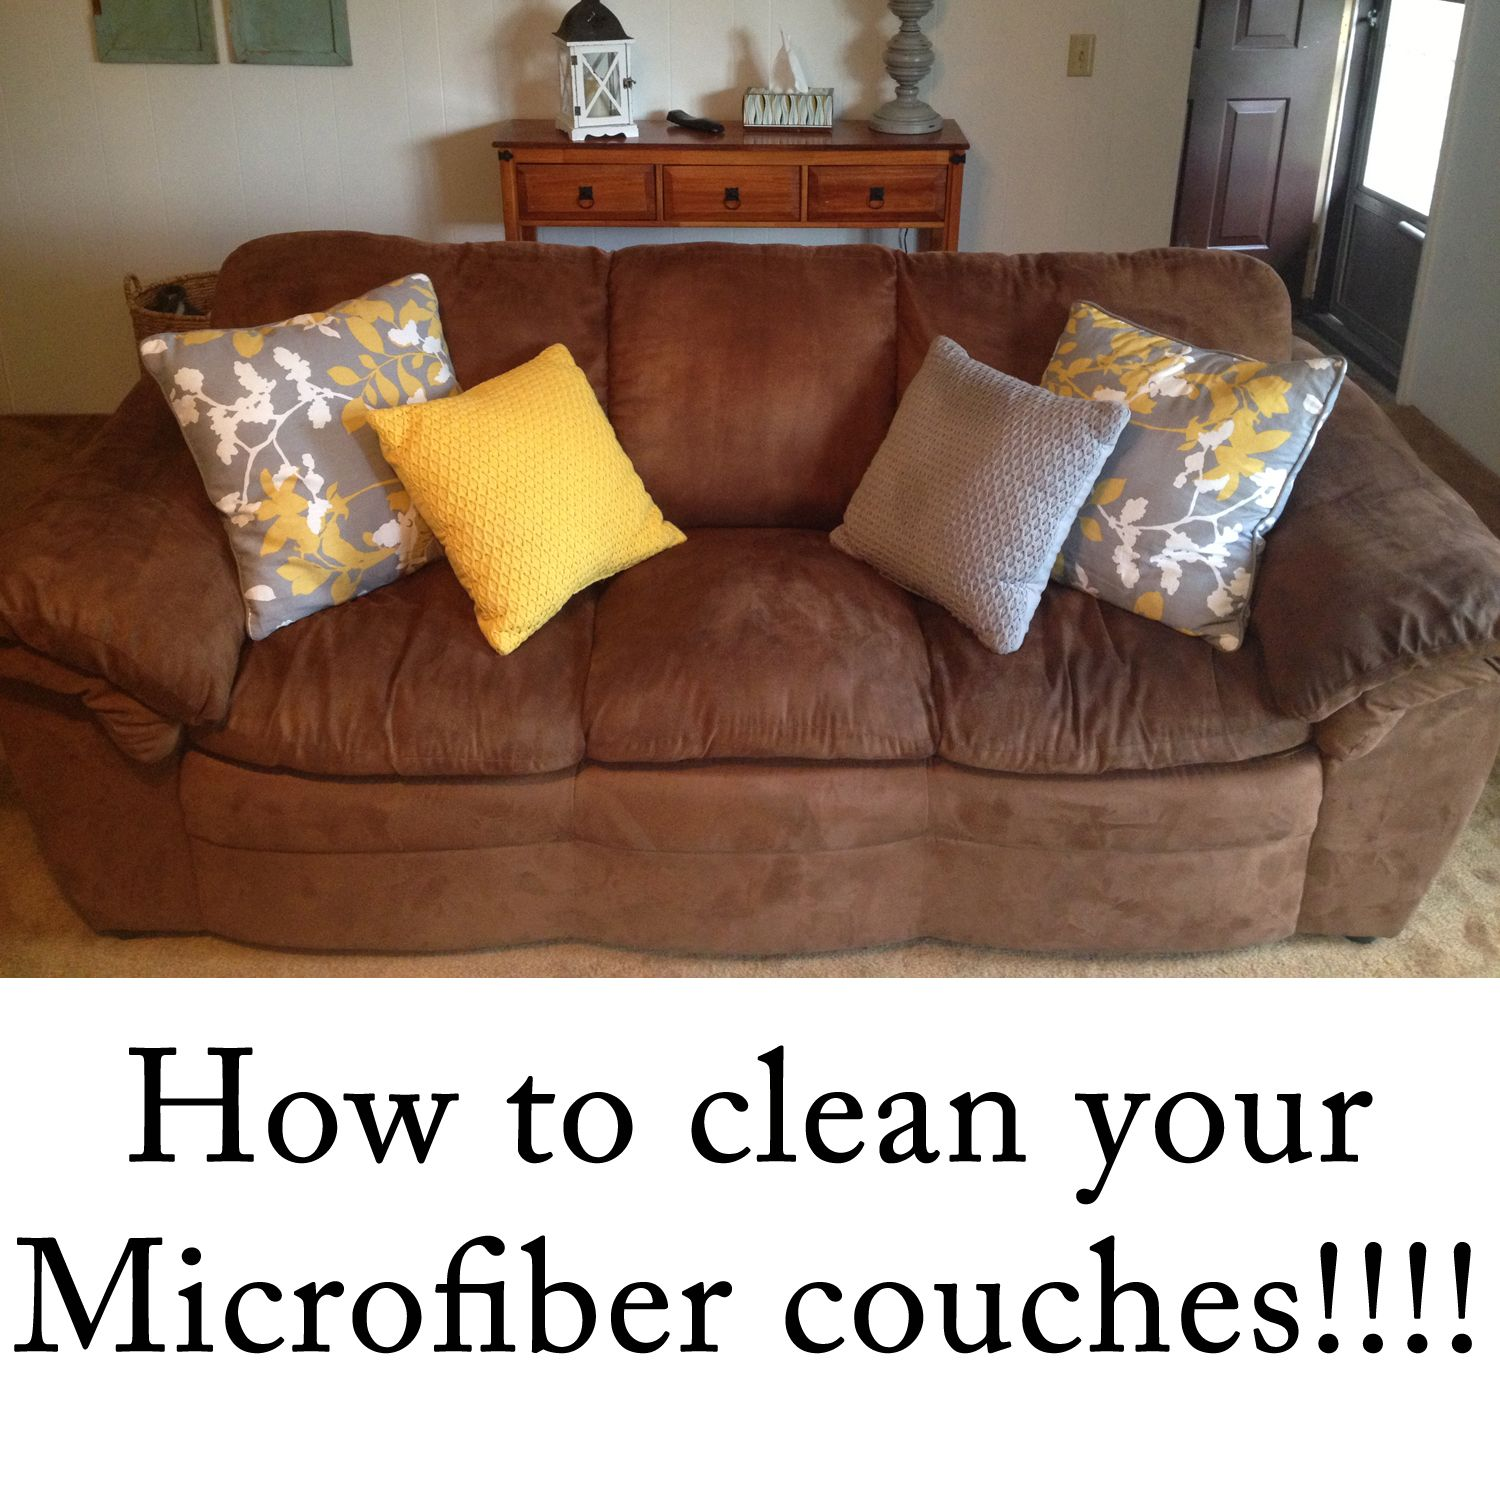 how to clean stains off your sofa best modern sofas microfiber couch cleaner this worked soooo well we got